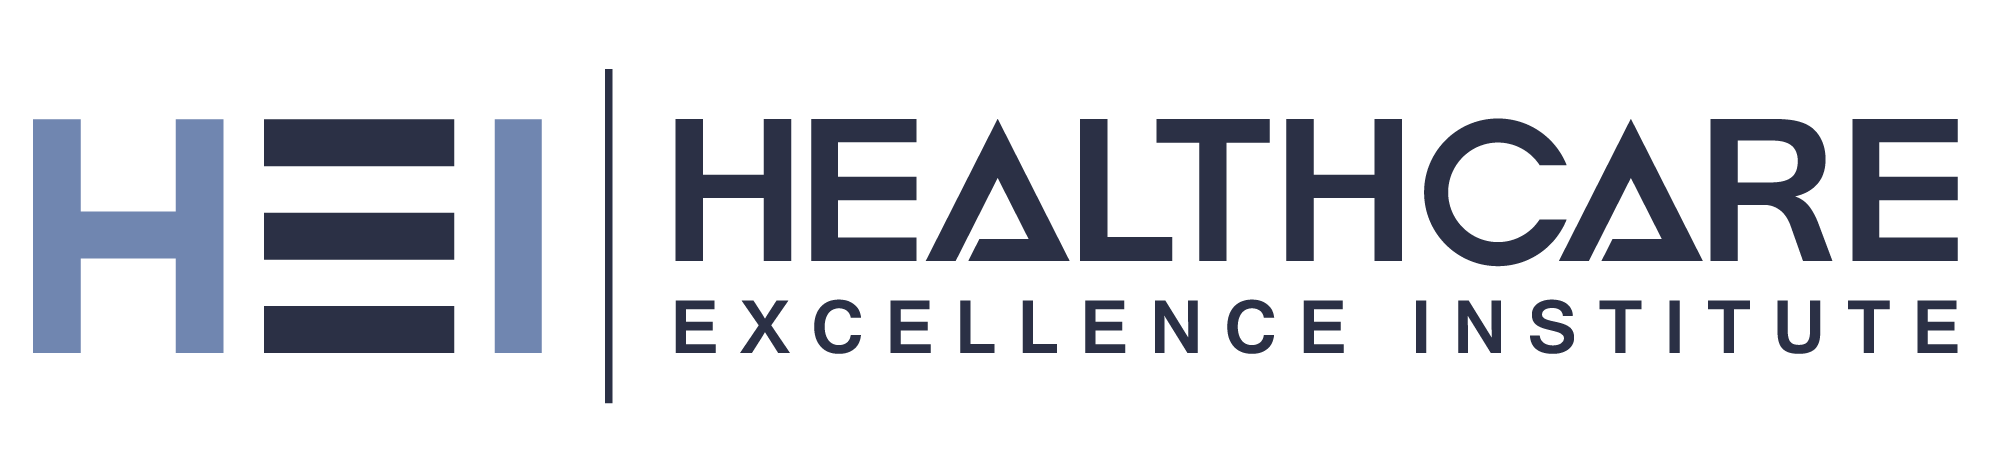 Healthcare Excellence Institute